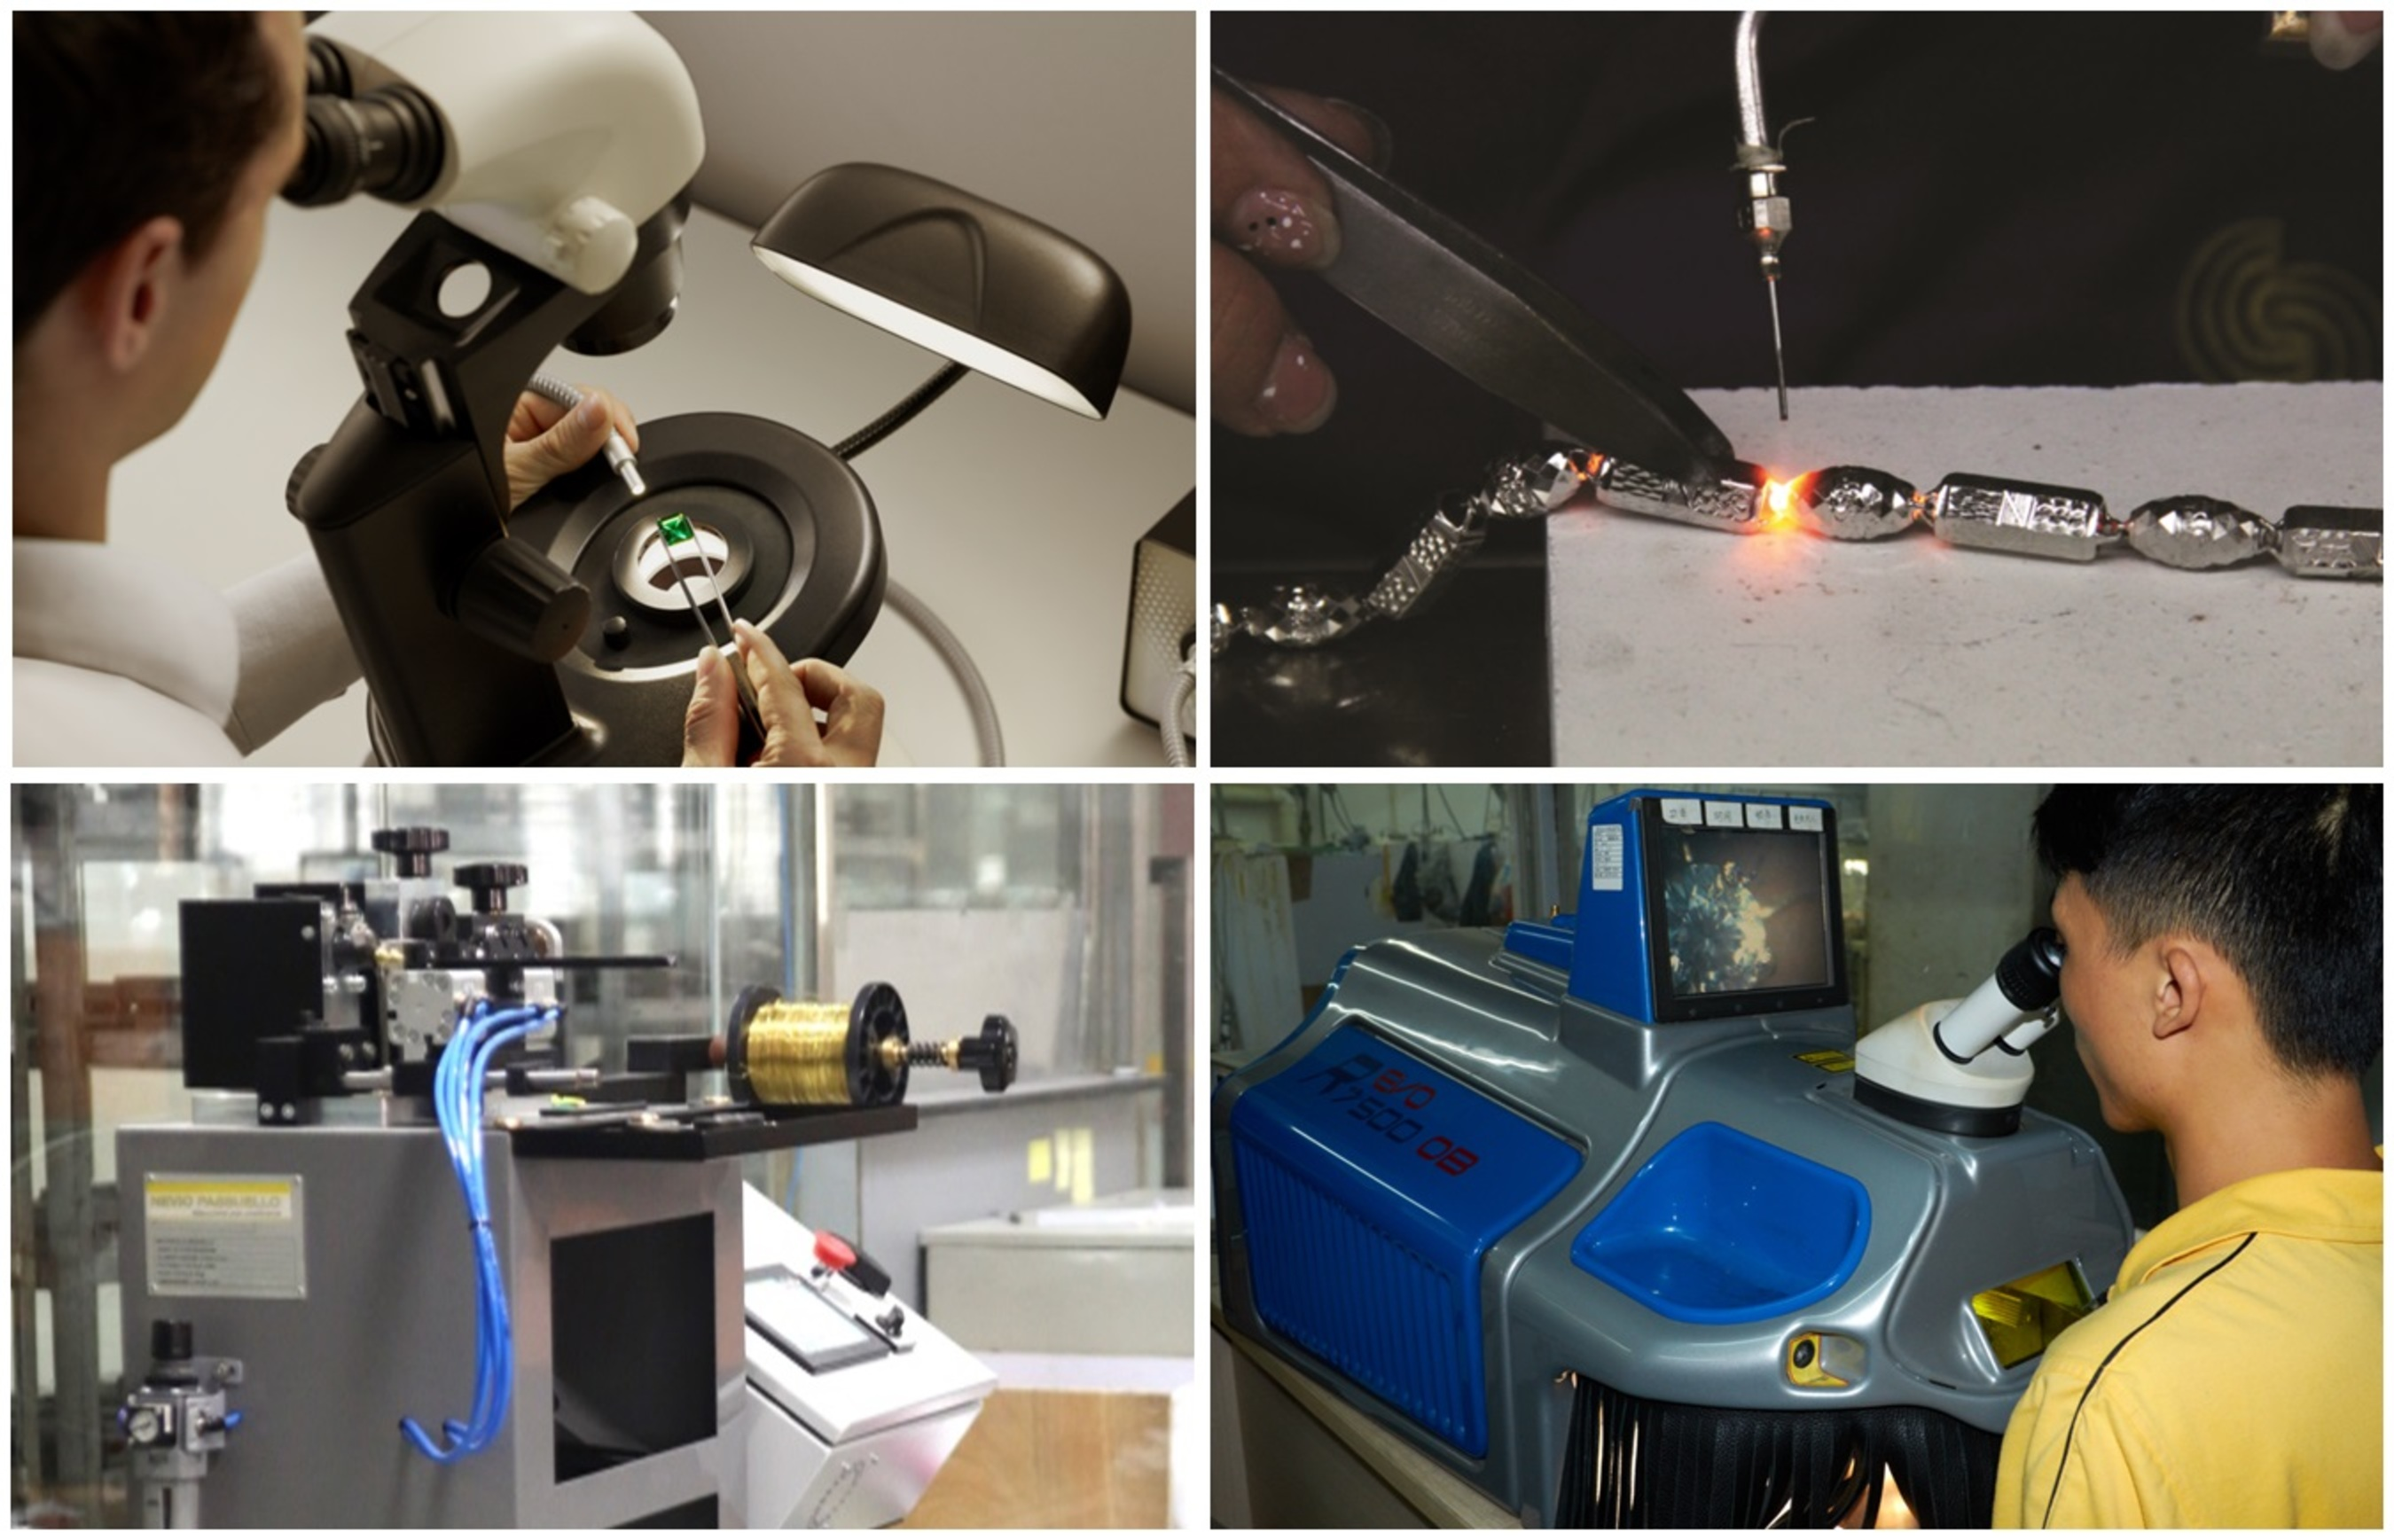 (From top left, clockwise) Gubelin Gem Lab gemmologist at work, weld-free technology for precious metal from Shenzhen Bofook Jewellery Co Ltd, jewellery polishing at Shenzhen Xingguangda Jewelry Industrial Co Ltd, and an advanced machinery at Shenzhen Ganlu Jewellery Co Ltd